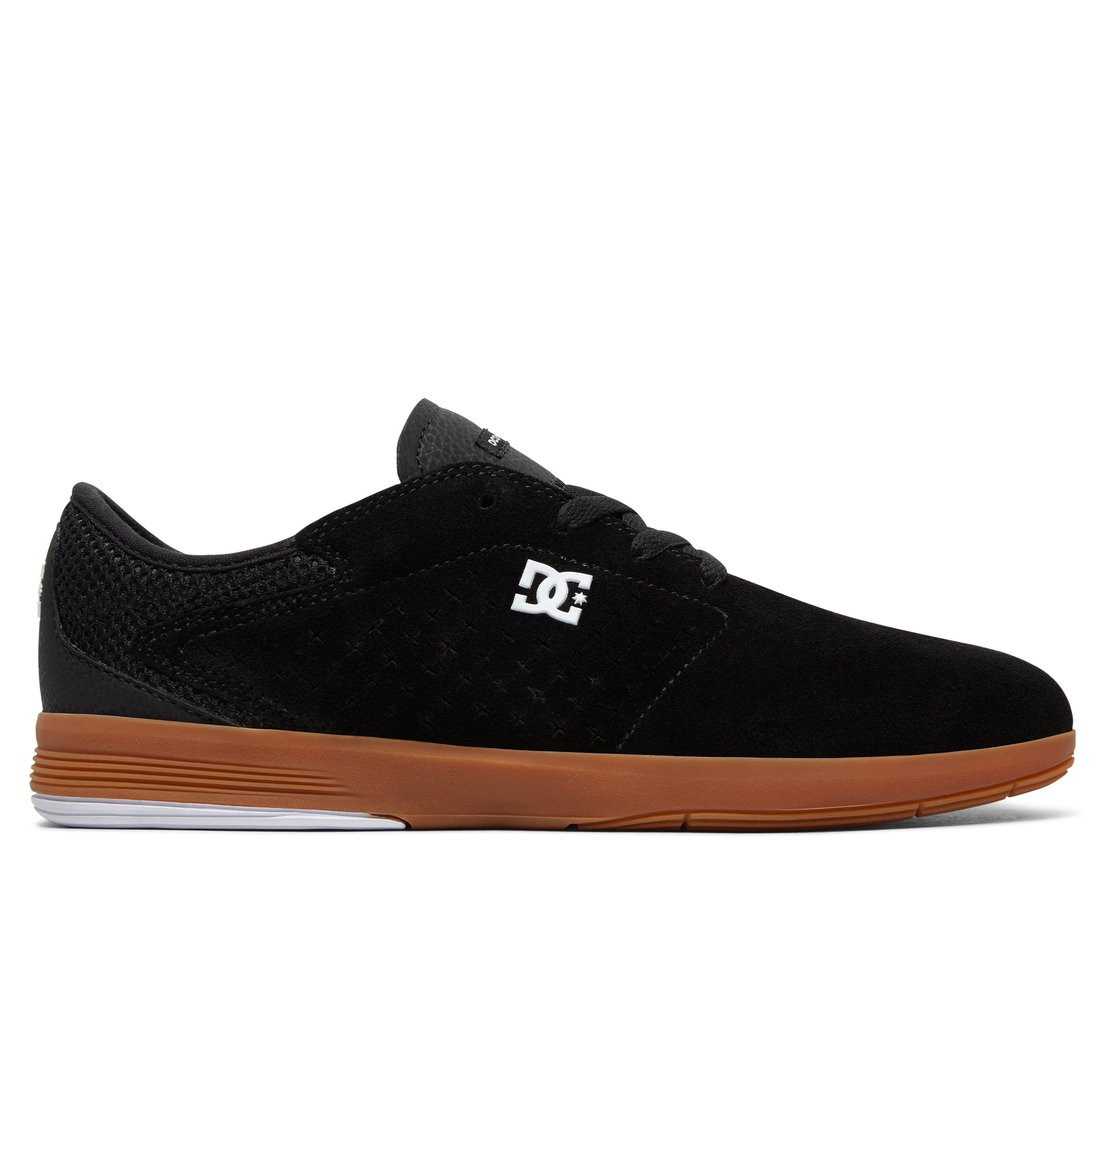 Are Dc Shoes True To Size